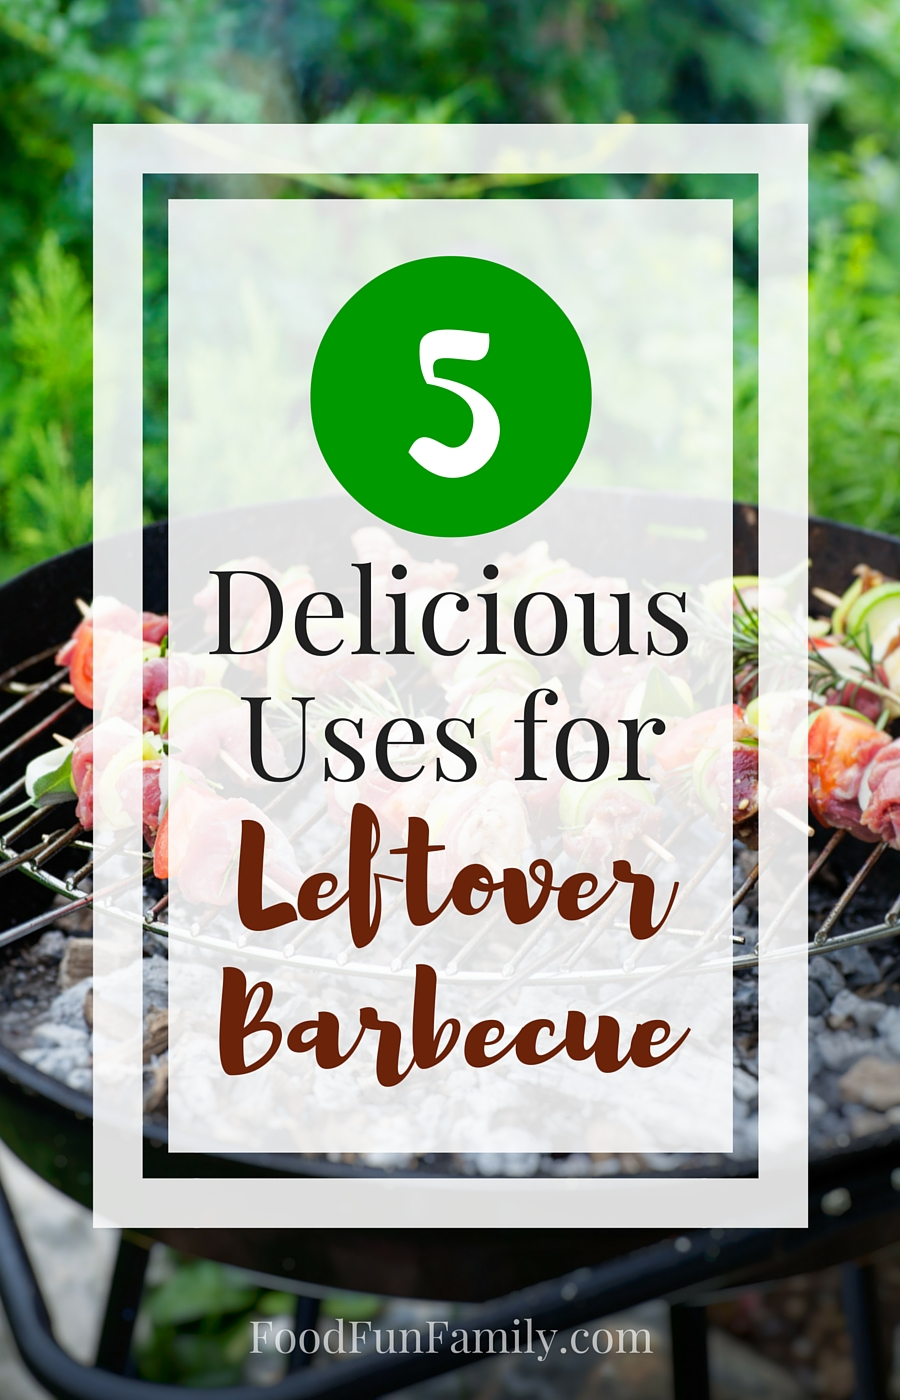 5 Delicious Uses for leftover barbecue - if you've just had a BBQ and you're left with leftover meat, you've got to try some of these delicious meal ideas!